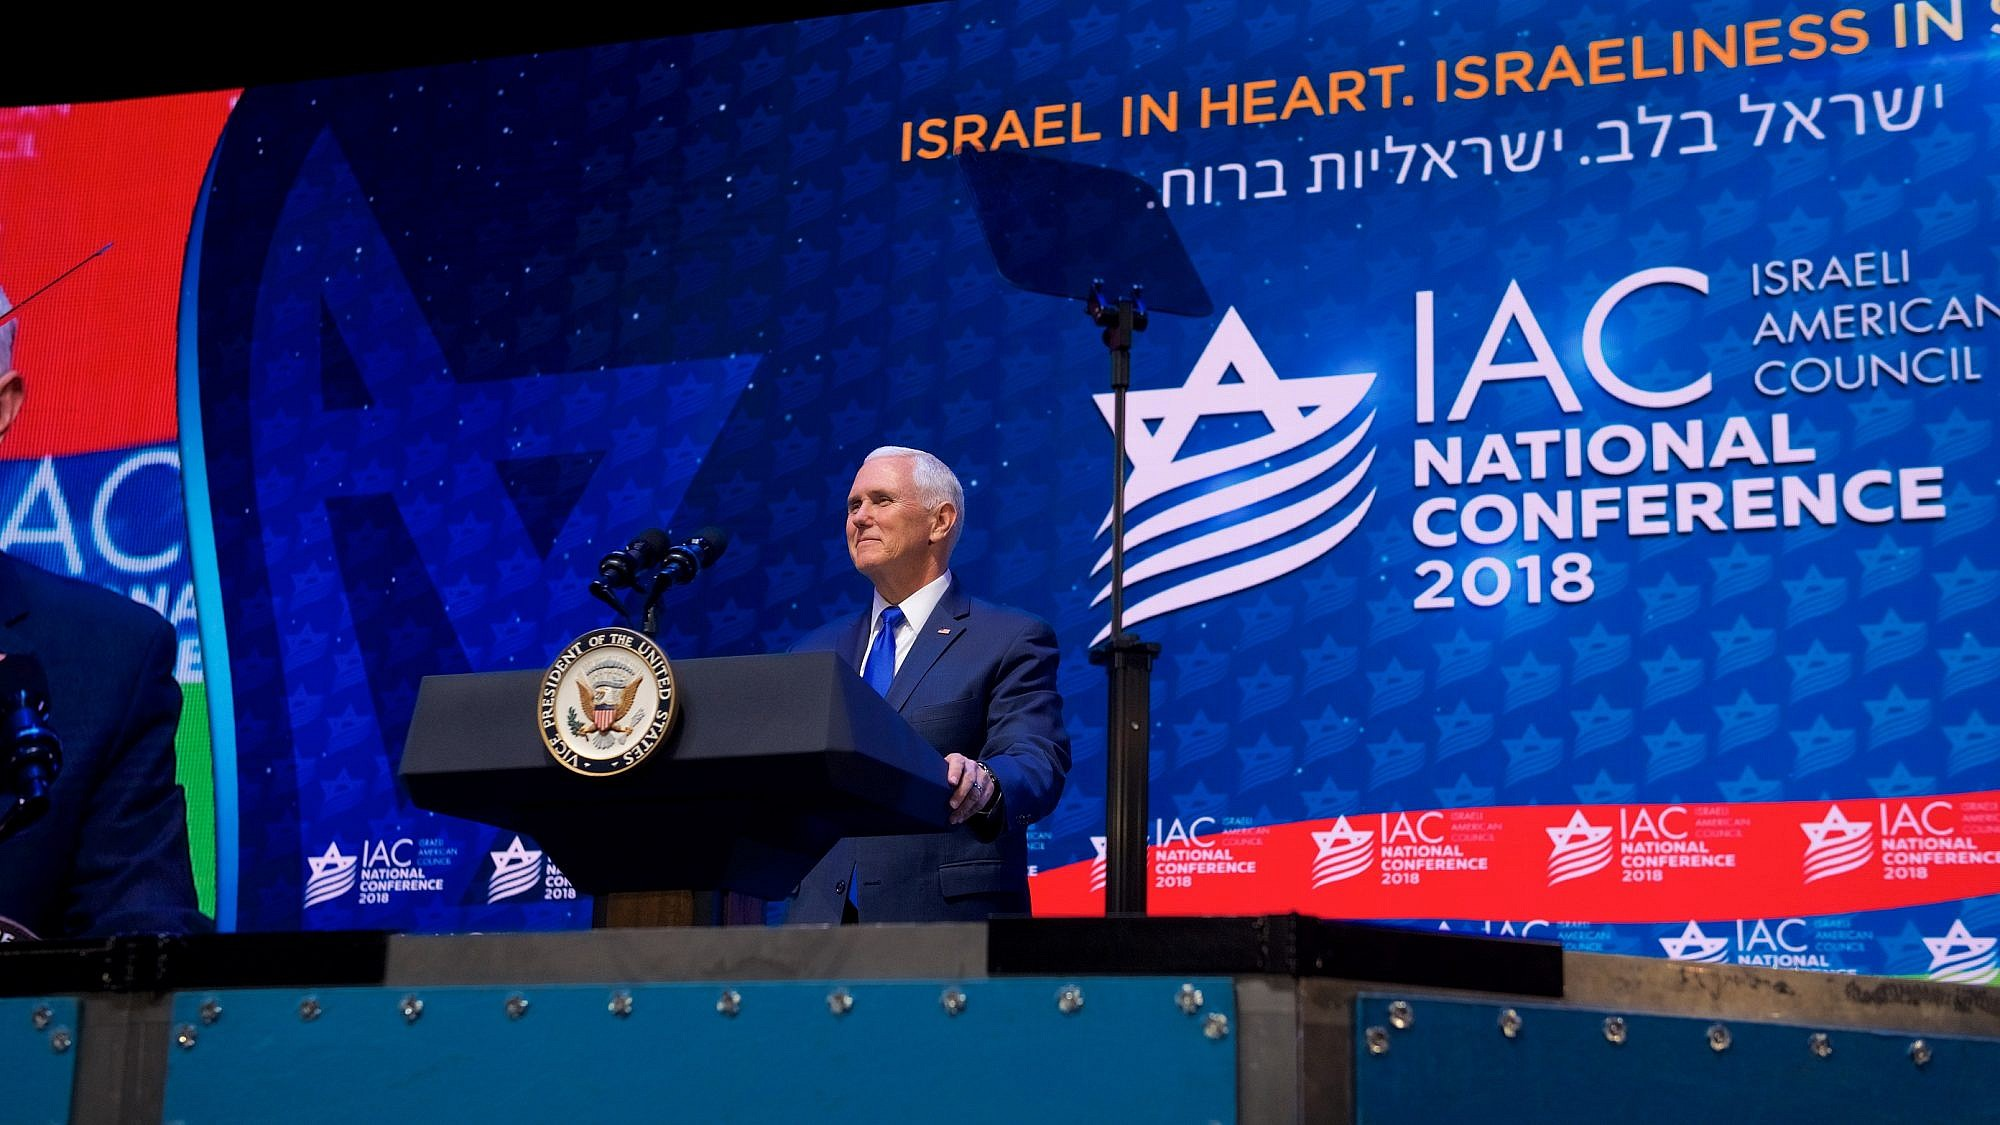 U.S. Vice President Mike Pence speaking at the 2018 Israeli-American Council conference. Credit: Perry Bindelglass.